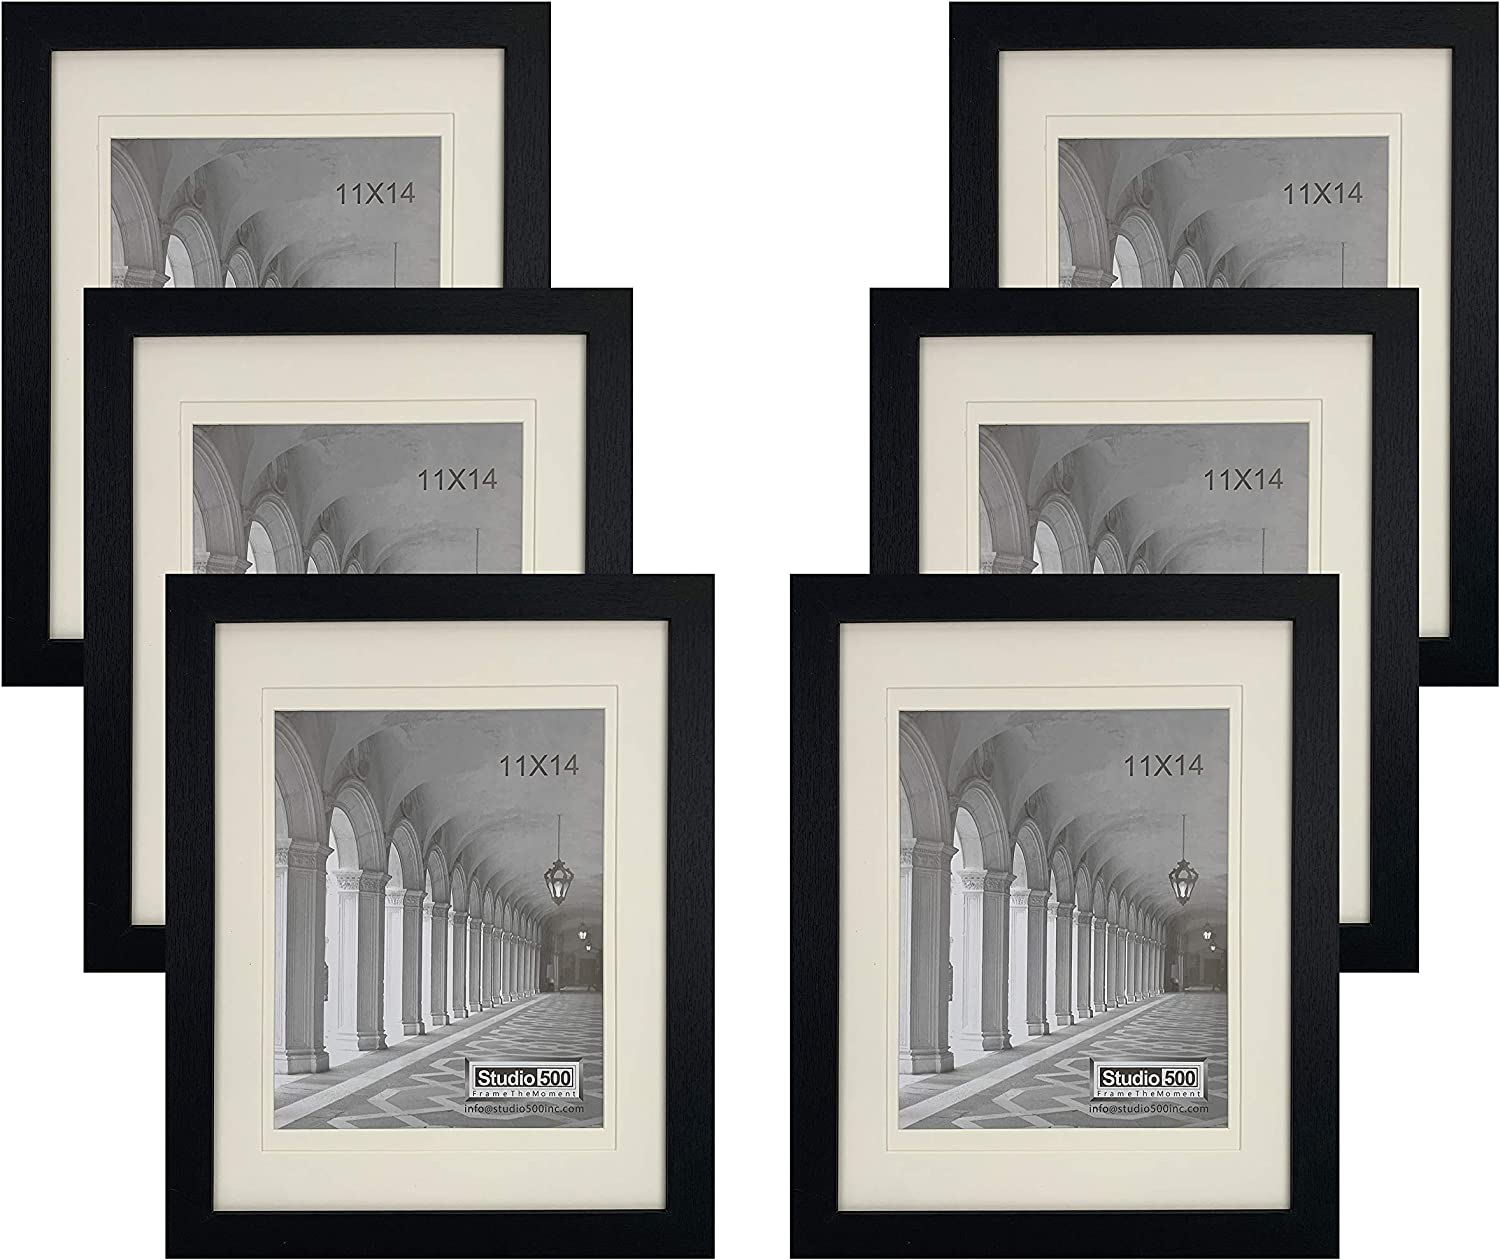 Studio 500~11x14 Black Distressed Wide Border Picture Frames w/Off-White Mats from Our Distressed Collection (MDF2915) Black, 6-Pack